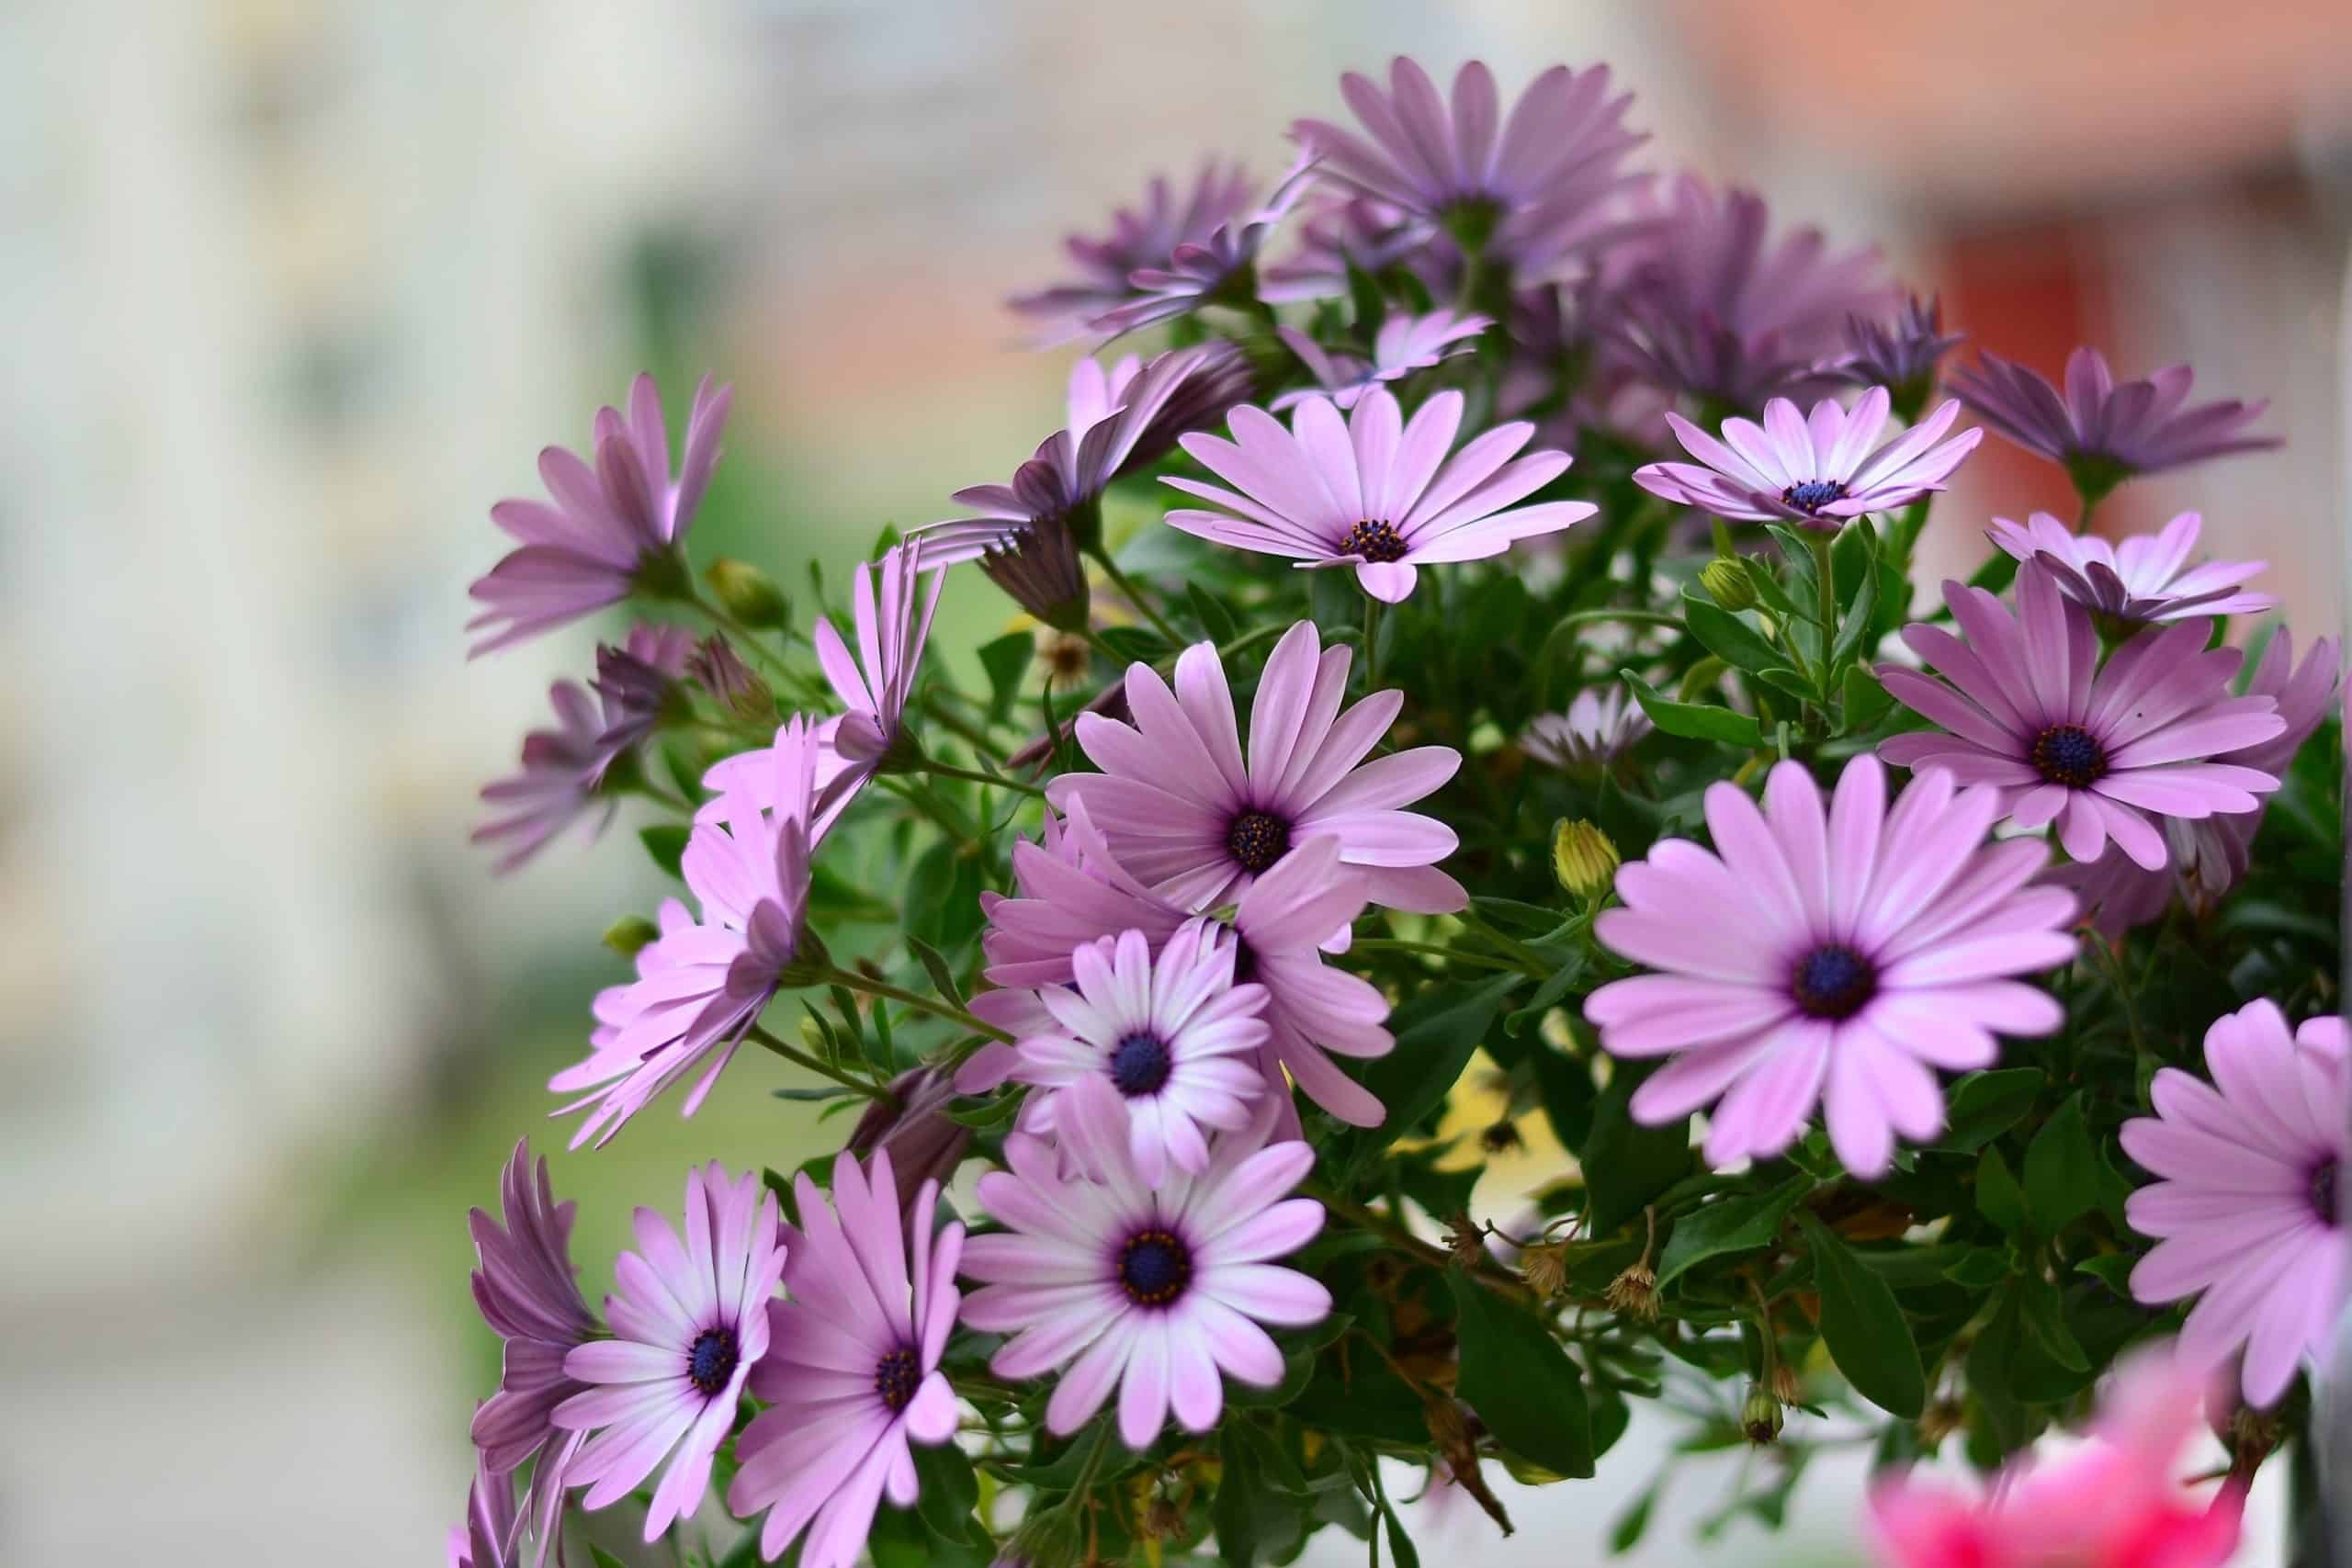 Flower Garden - How to Choose the Best Plant